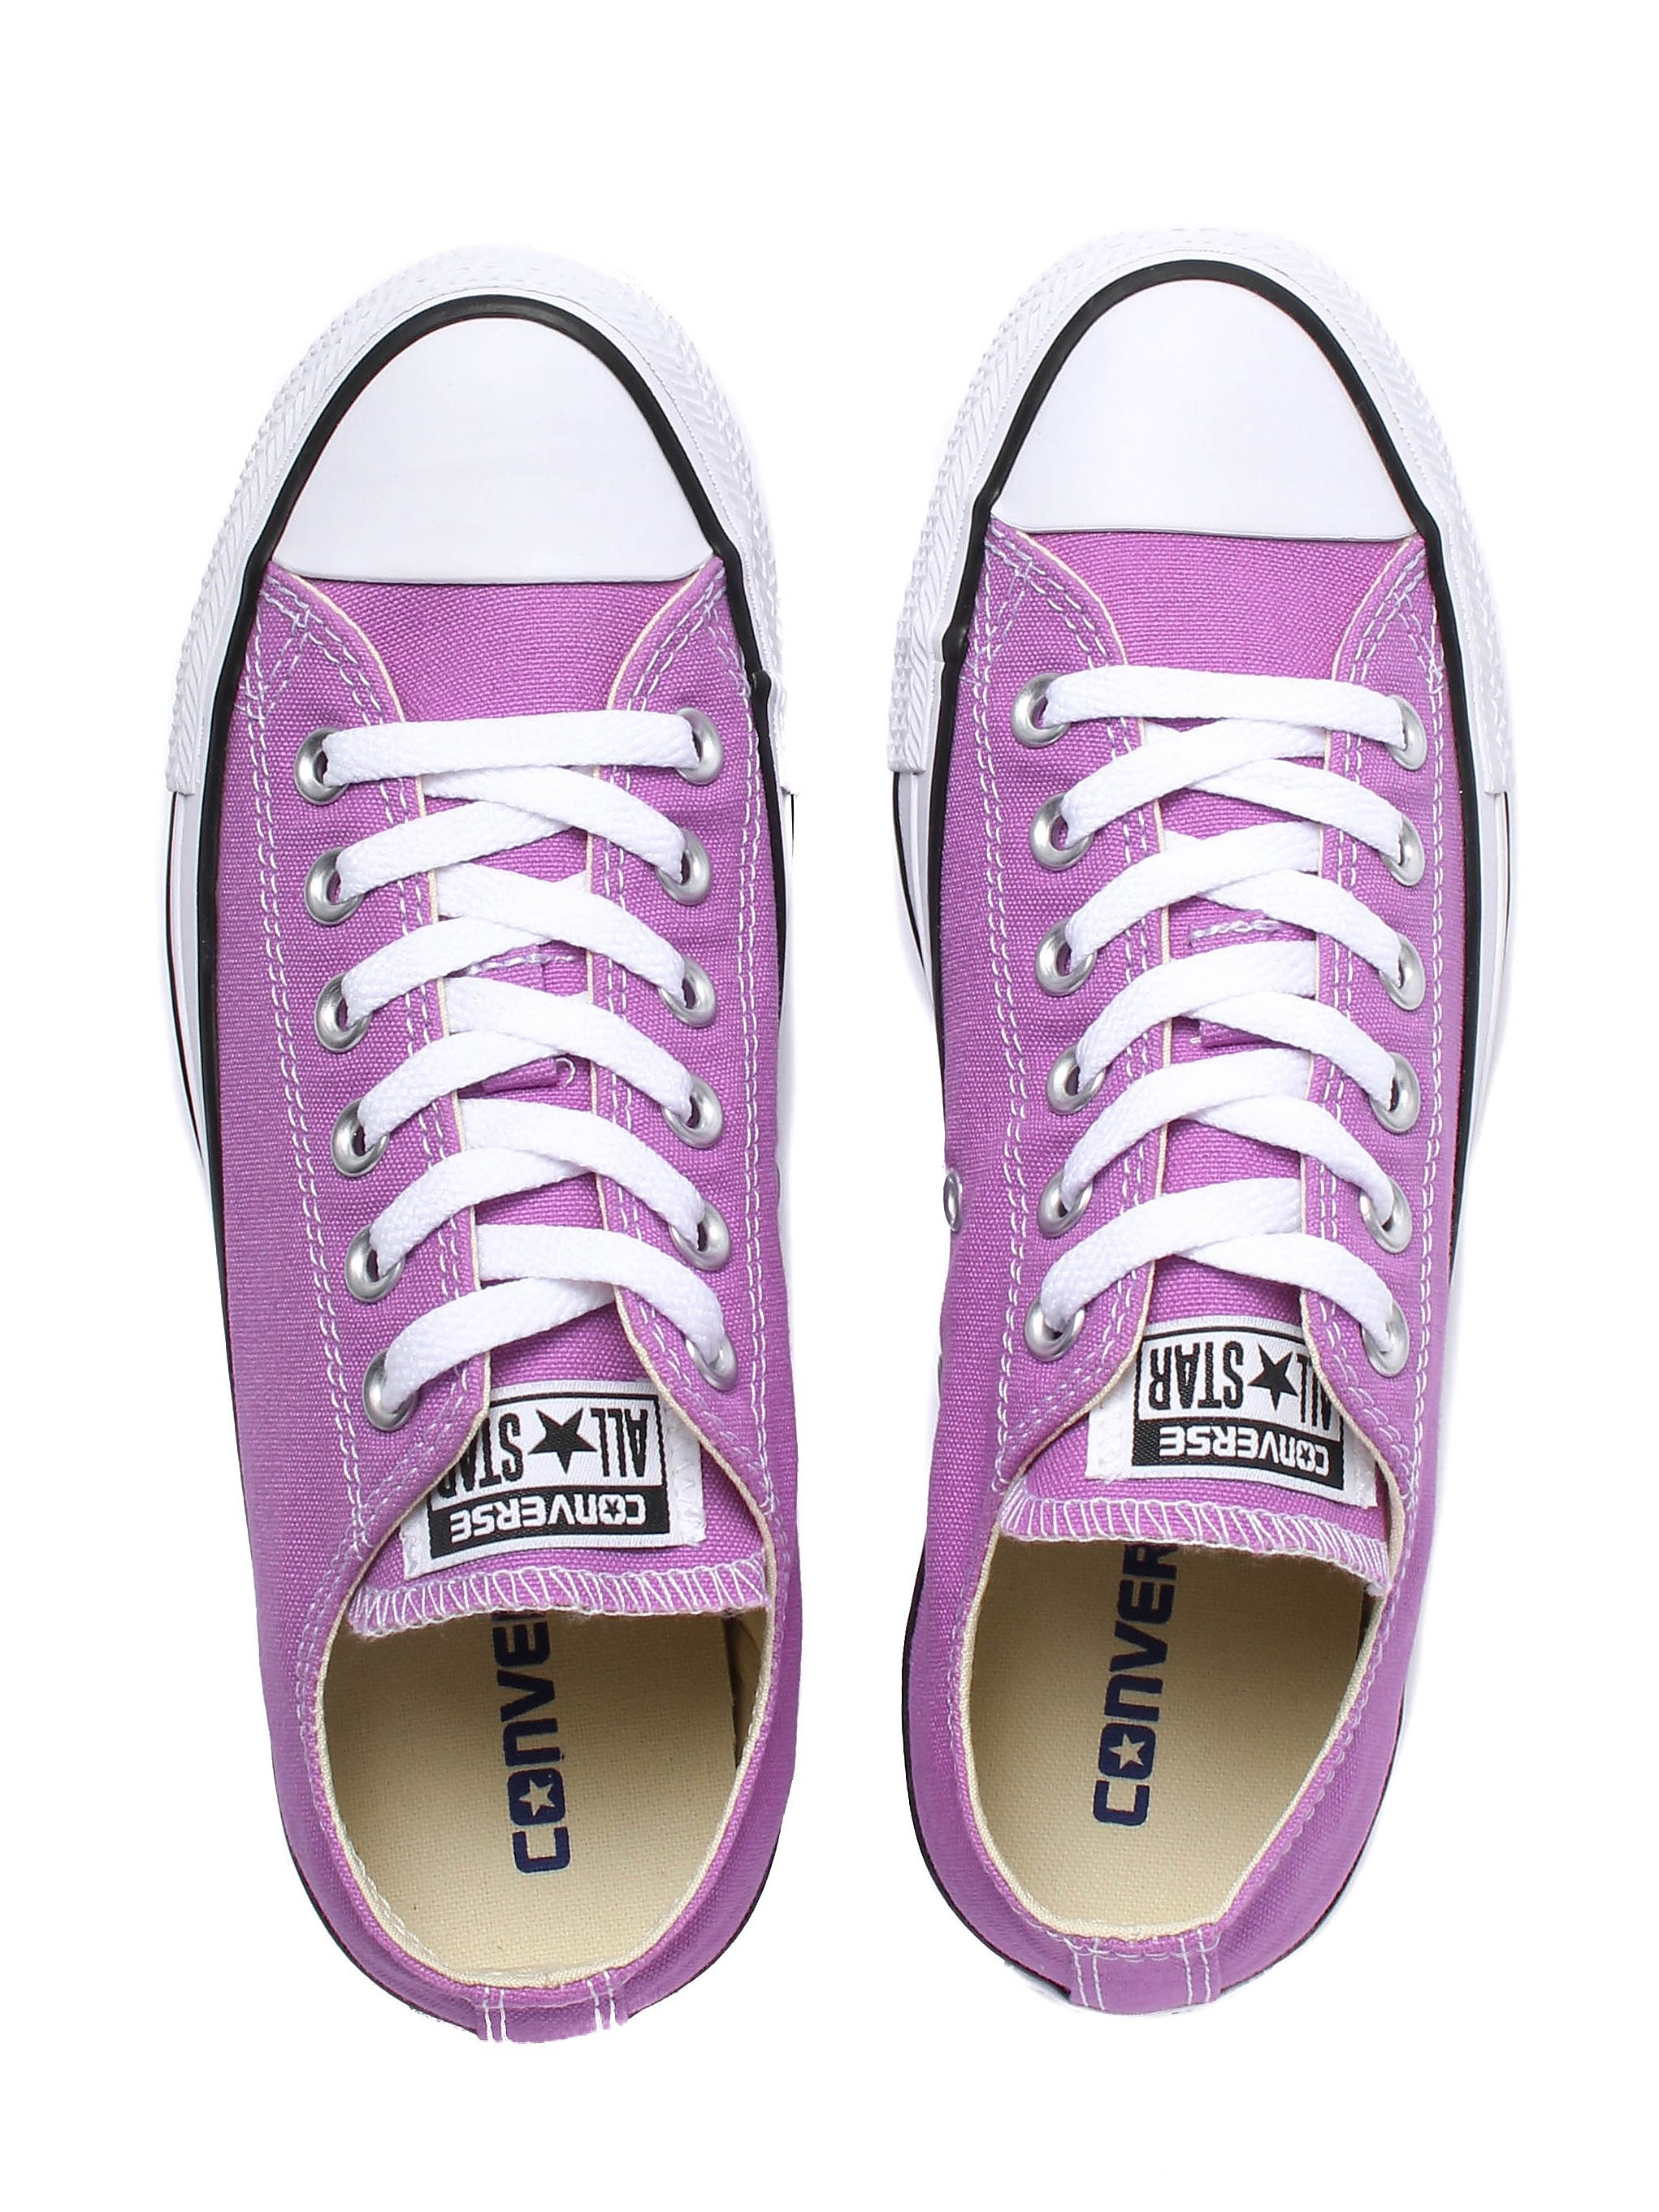 Converse Women's Chuck Taylor All Star OX Canvas Trainers - Fuchsia Glow